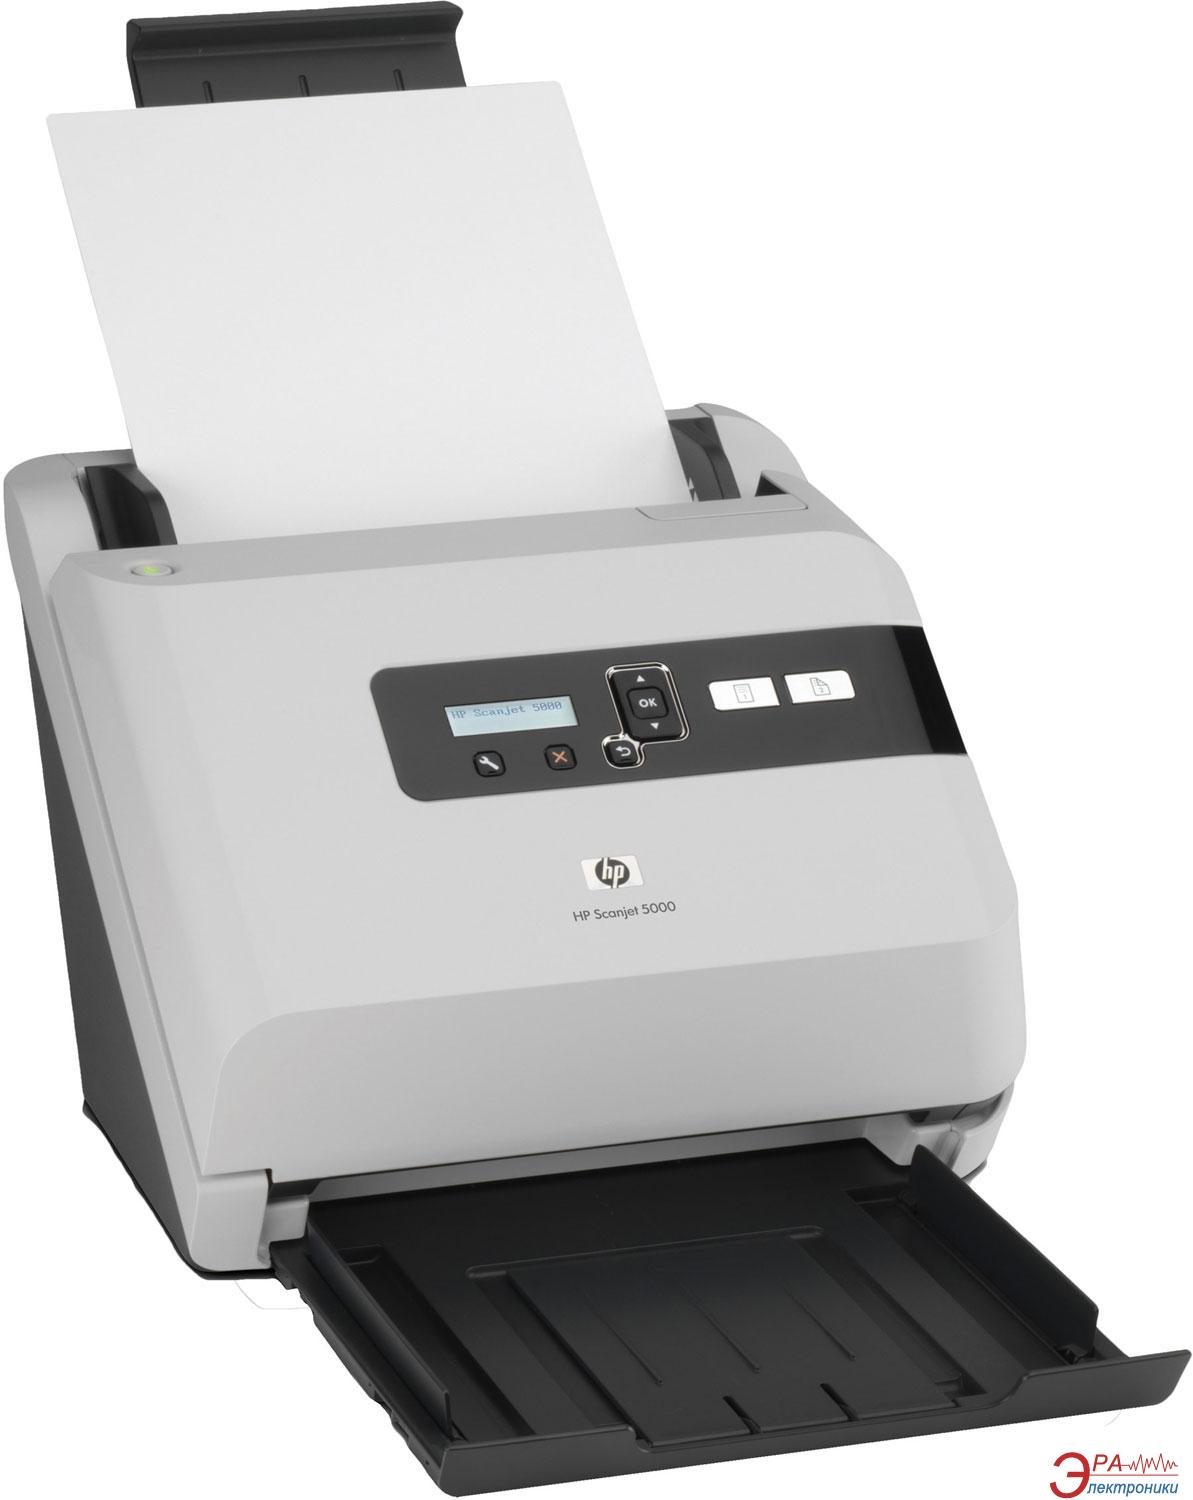 Сканер А4 Epson 5000 Sheetfeed (L2715A)